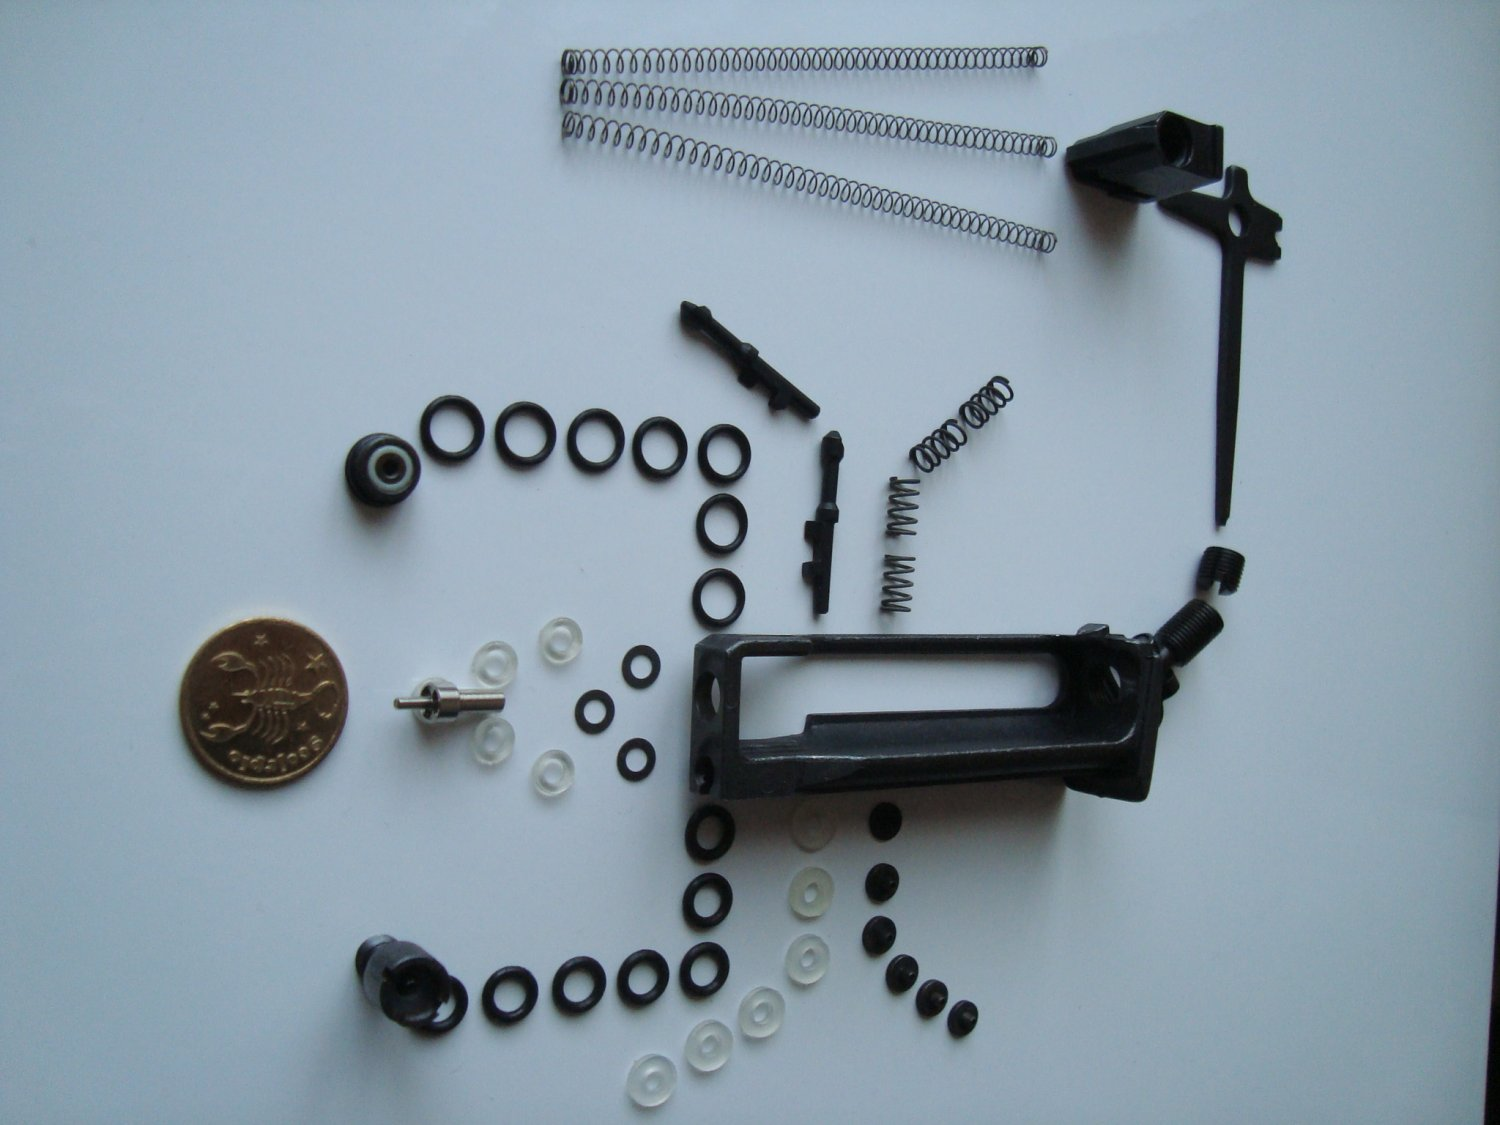 MP-654K magazine valve, saddle, o-rings, repair set upgrade baikal for gen 1-4 and 5 with wide frame